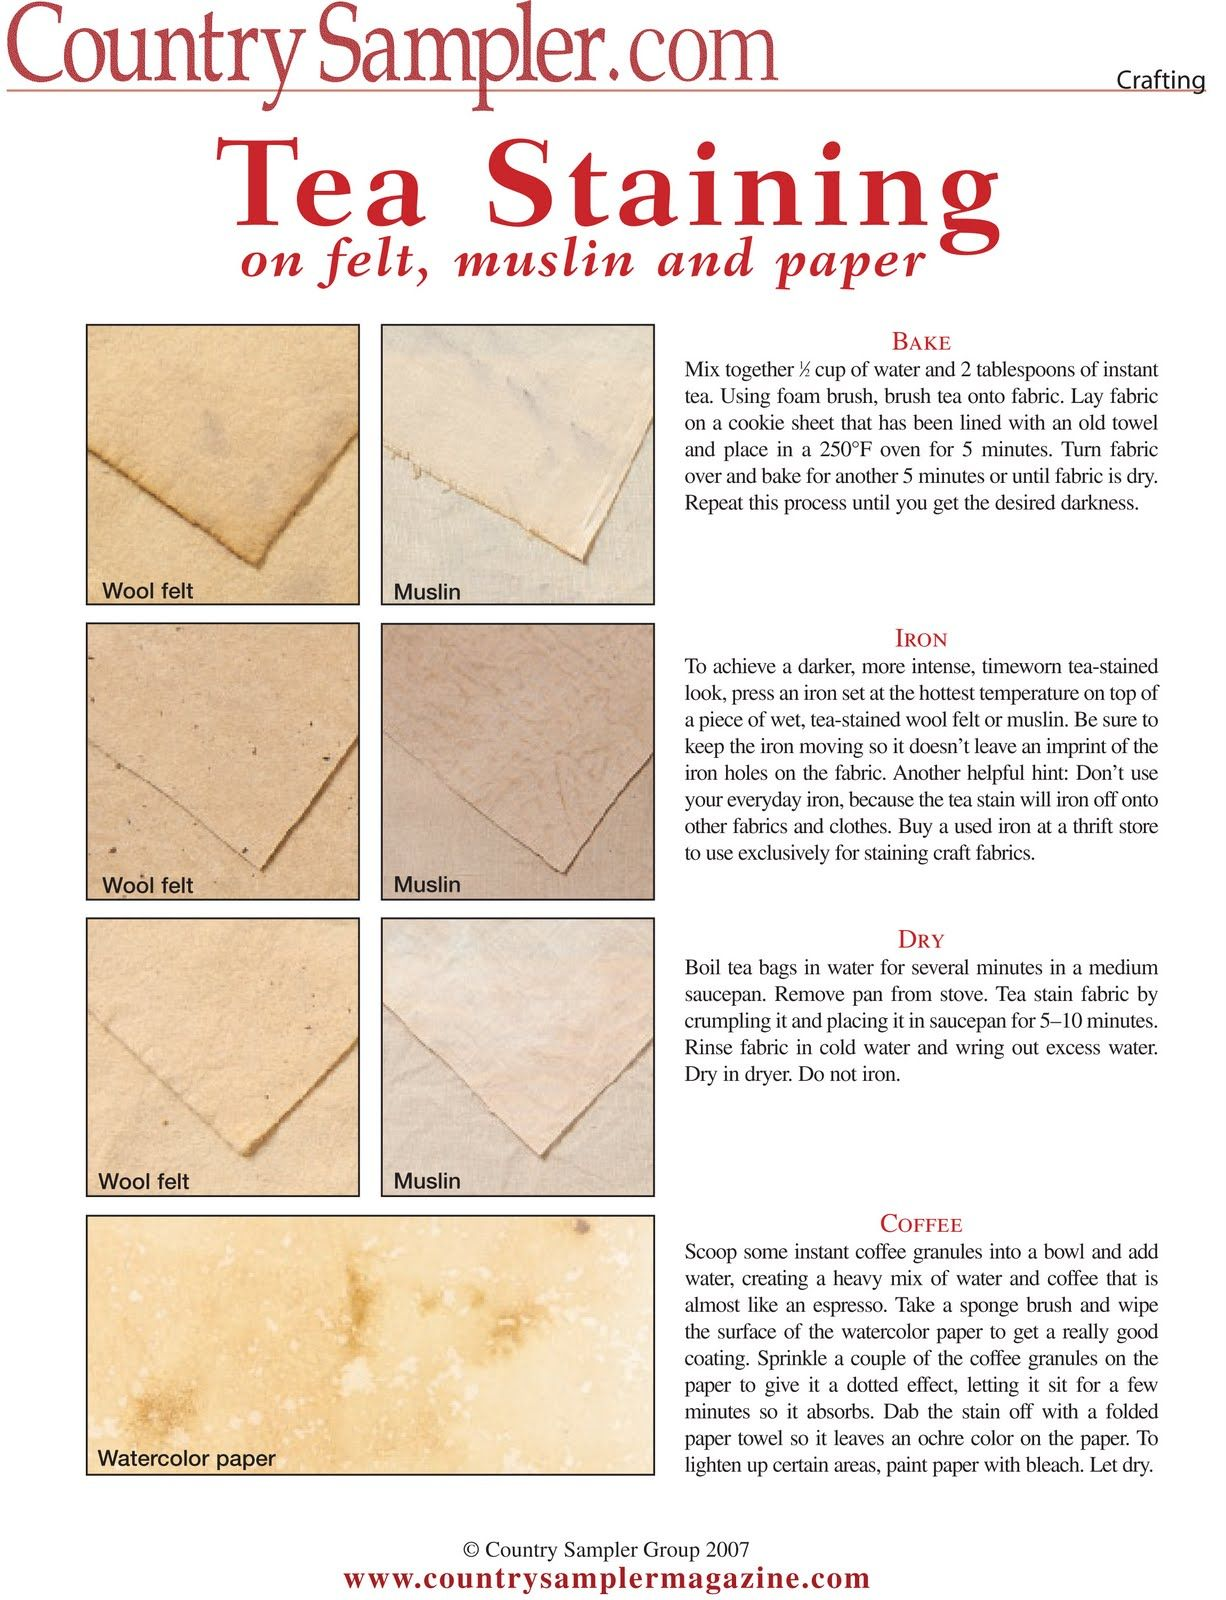 e6d3cd05499bdc4881dd8cf9f57e0c96 - How To Get Coffee Stains Out Of Cotton Fabric